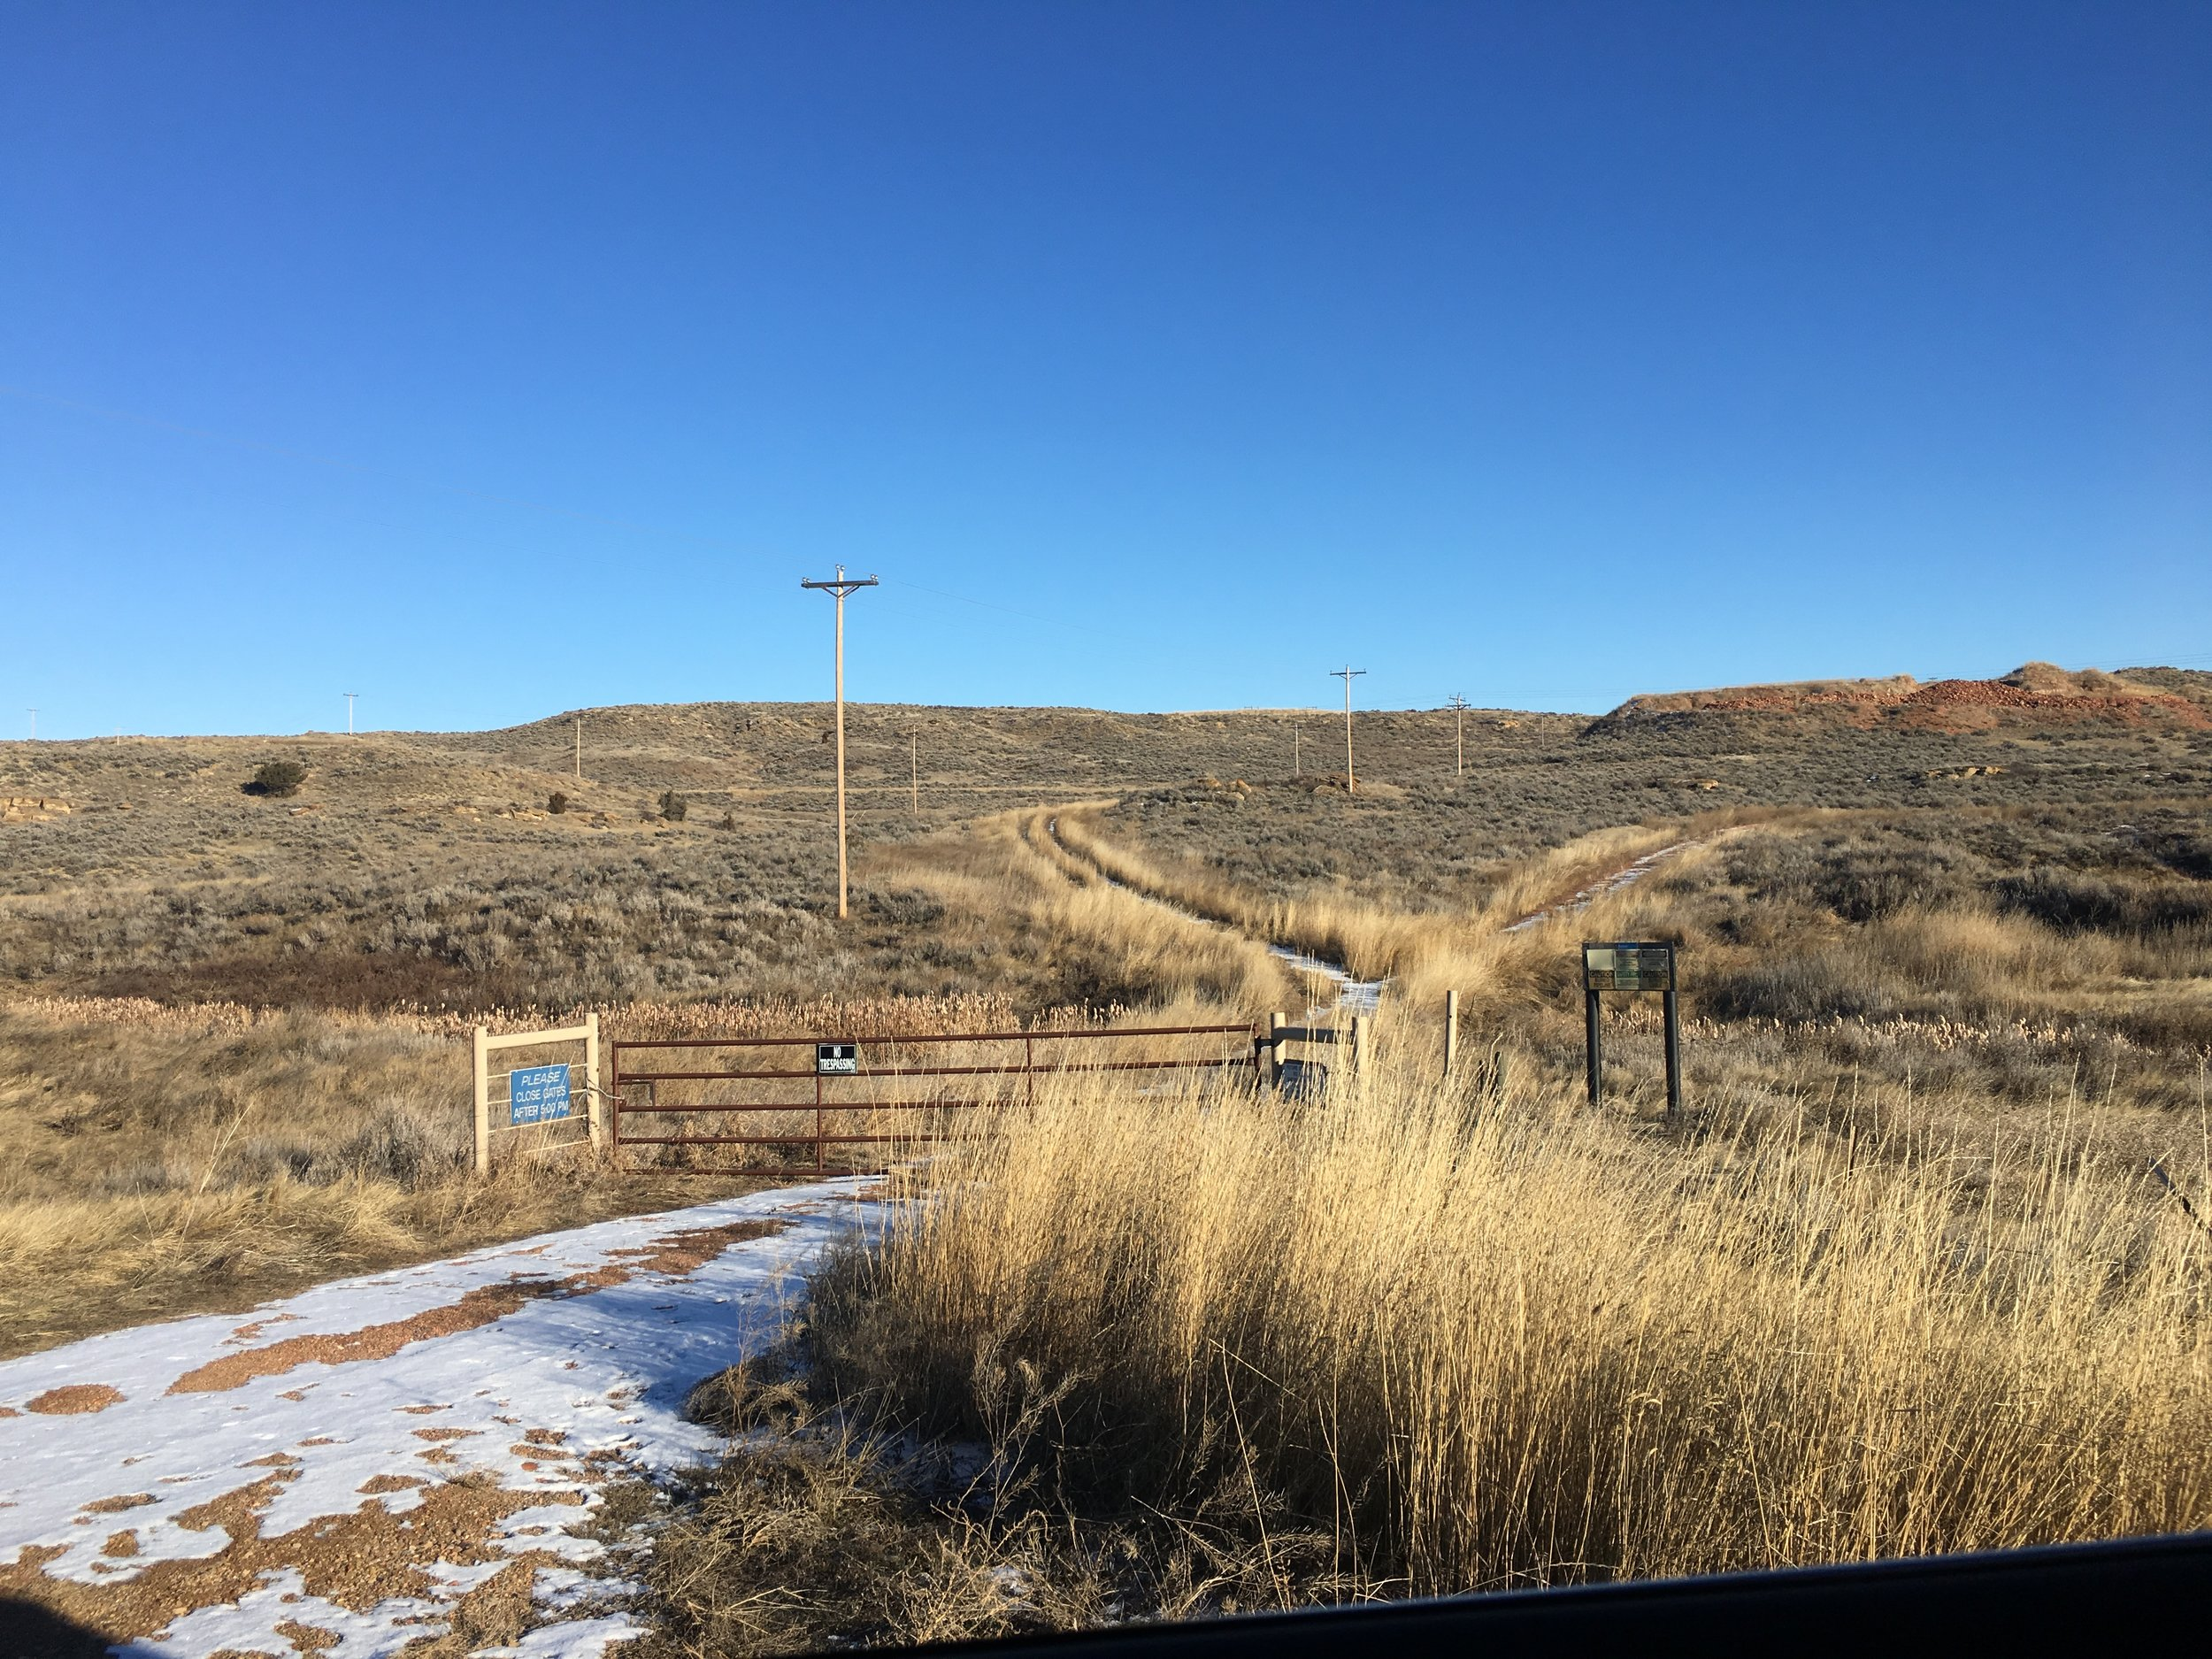 Coalbed methane access roads and above ground power infrastructure, Sheridan County, WY